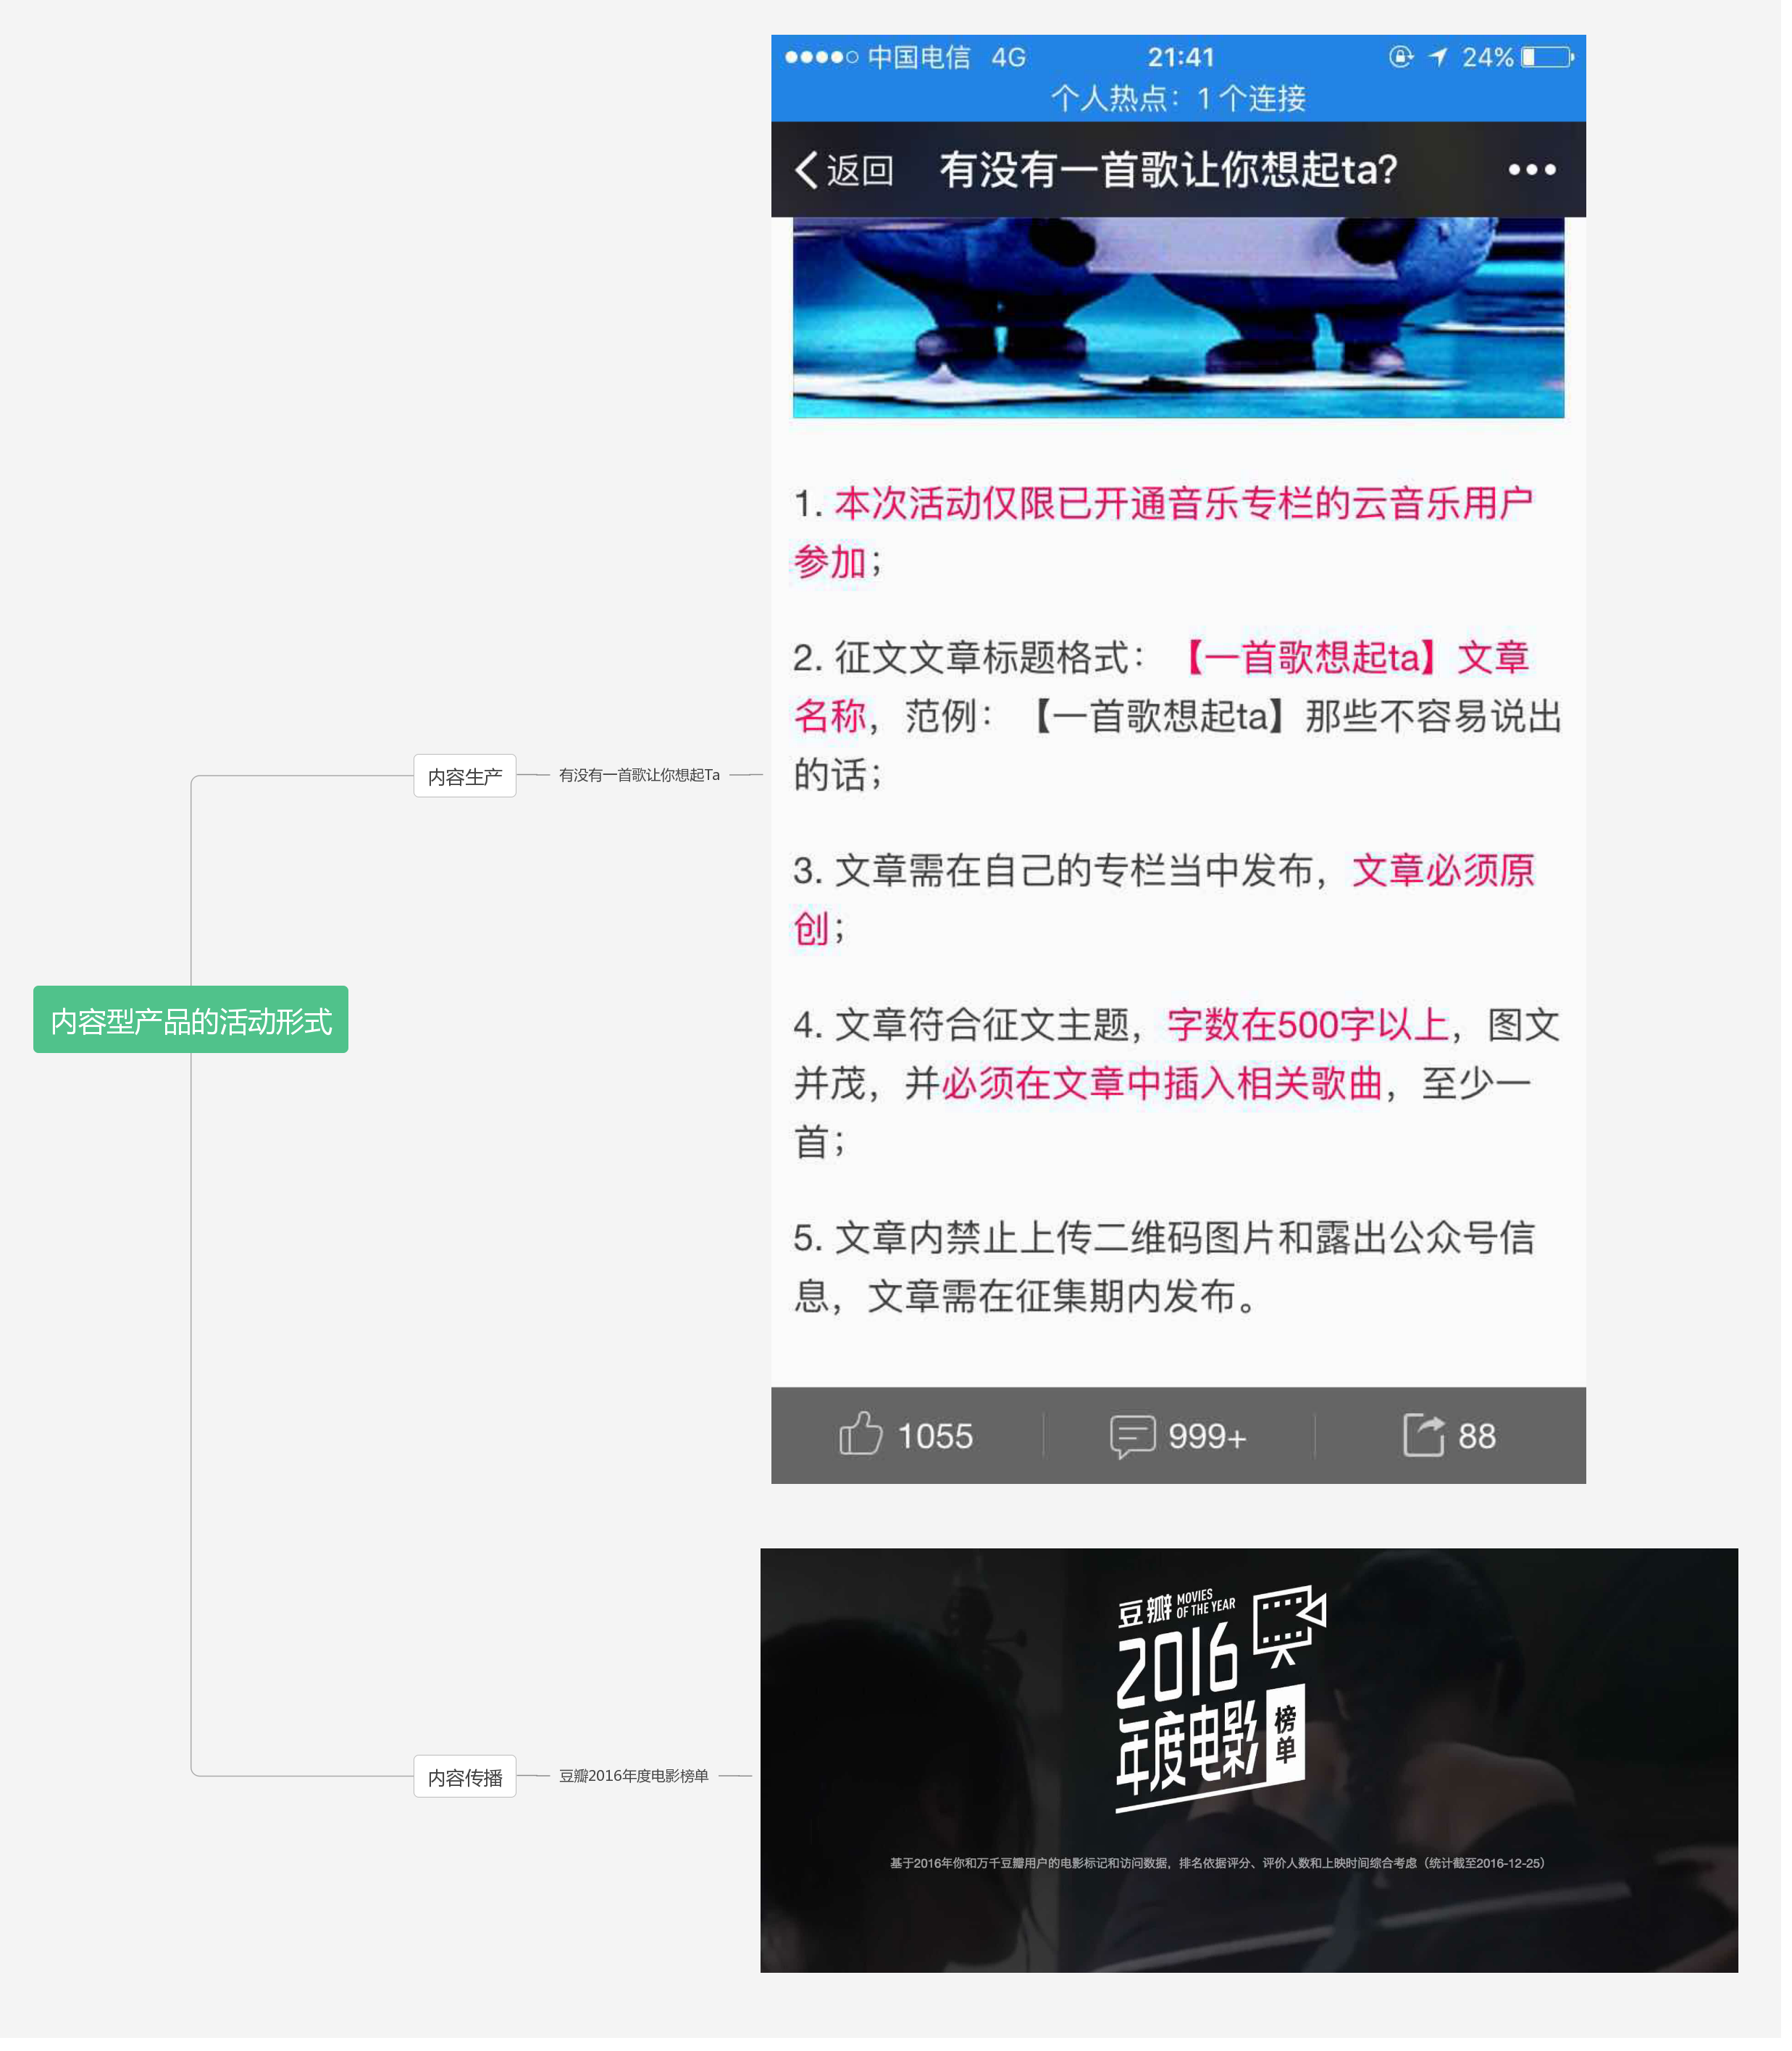 http://static.opp2.com/wp-content/uploads/2018/12/yunying5-1544543488-2.png